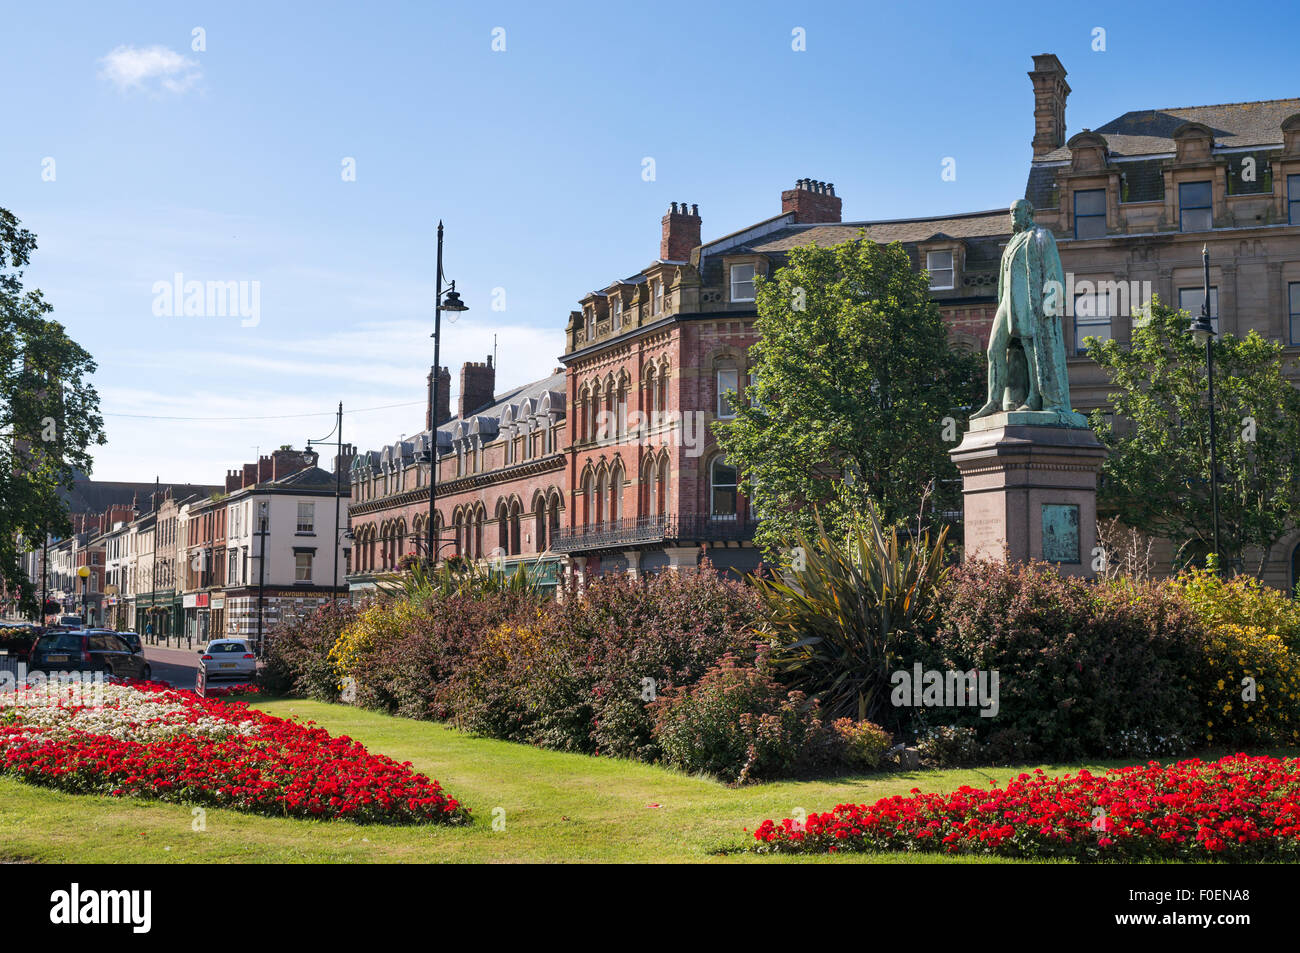 Ramsden Square statue and Abbey Road Barrow-in-Furness, Cumbria, England, UK Stock Photo